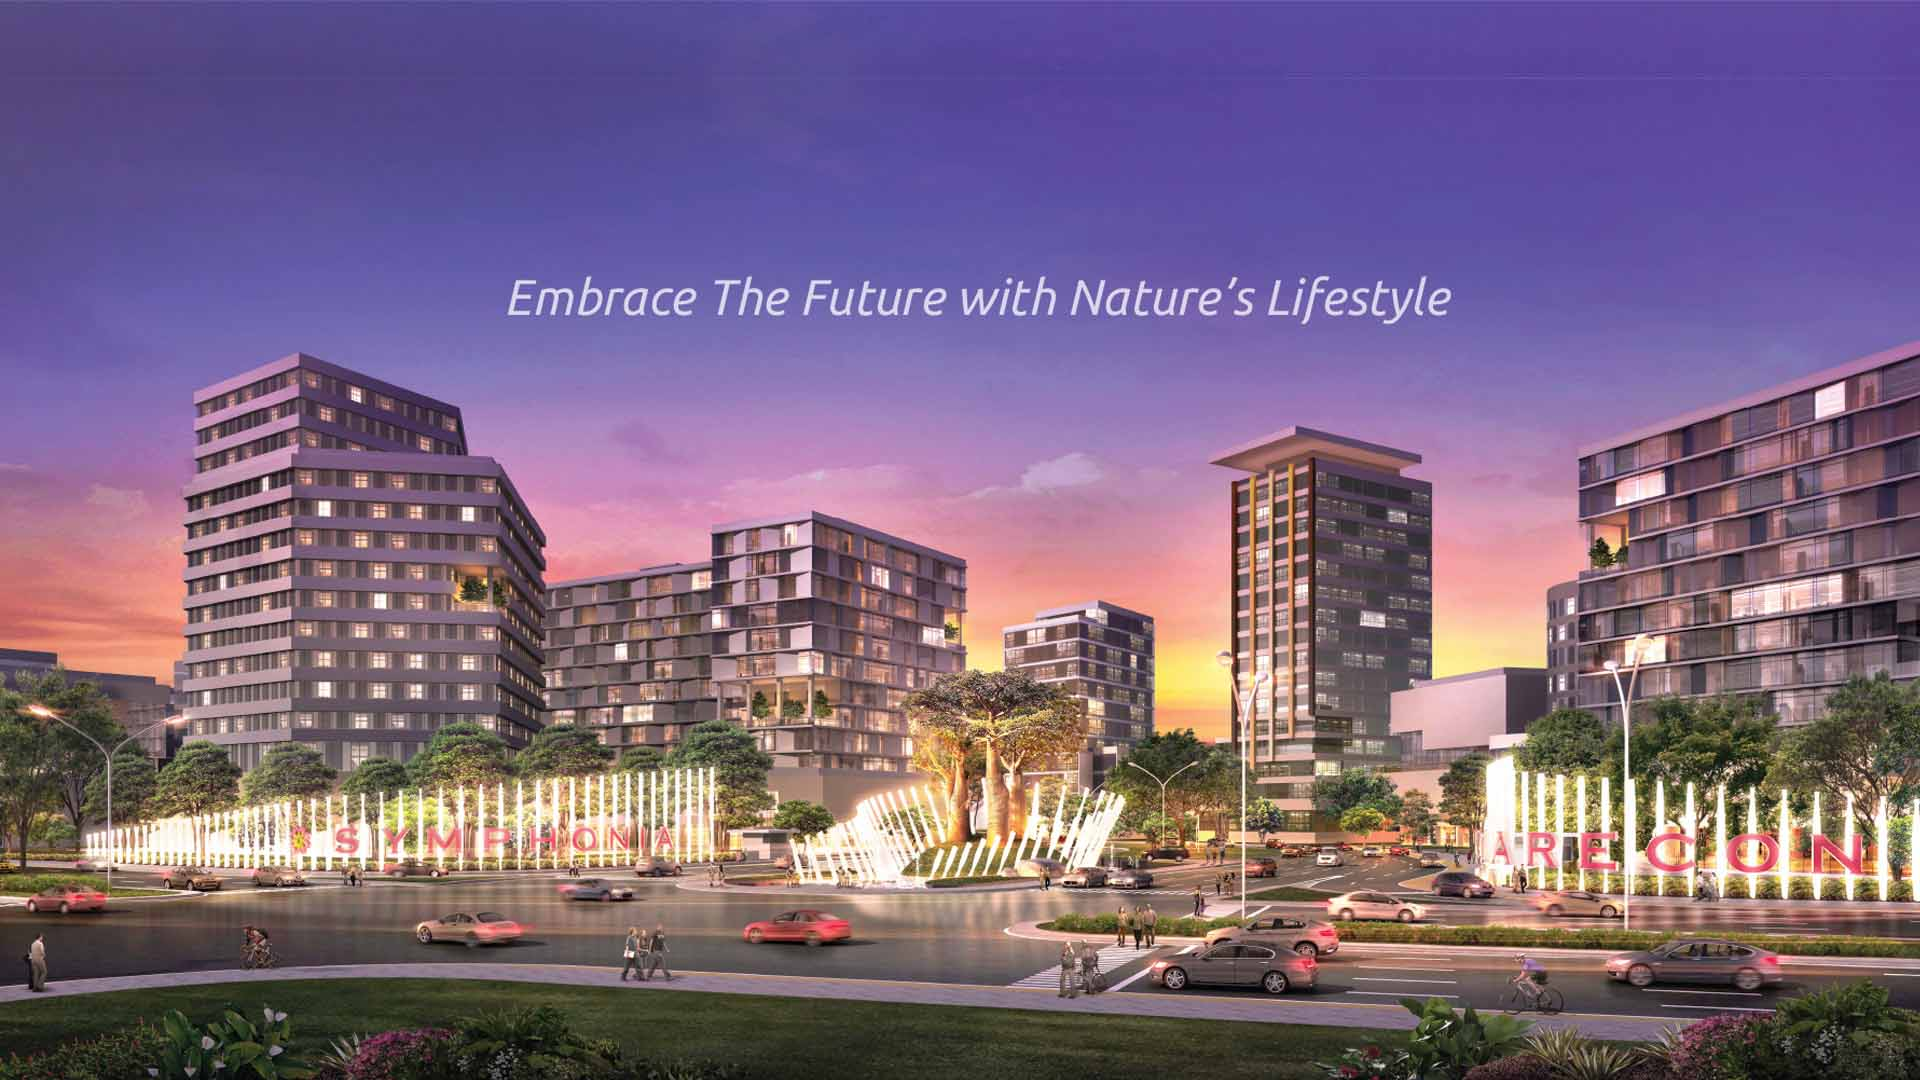 Embrace The Future with Nature's Lifestyle